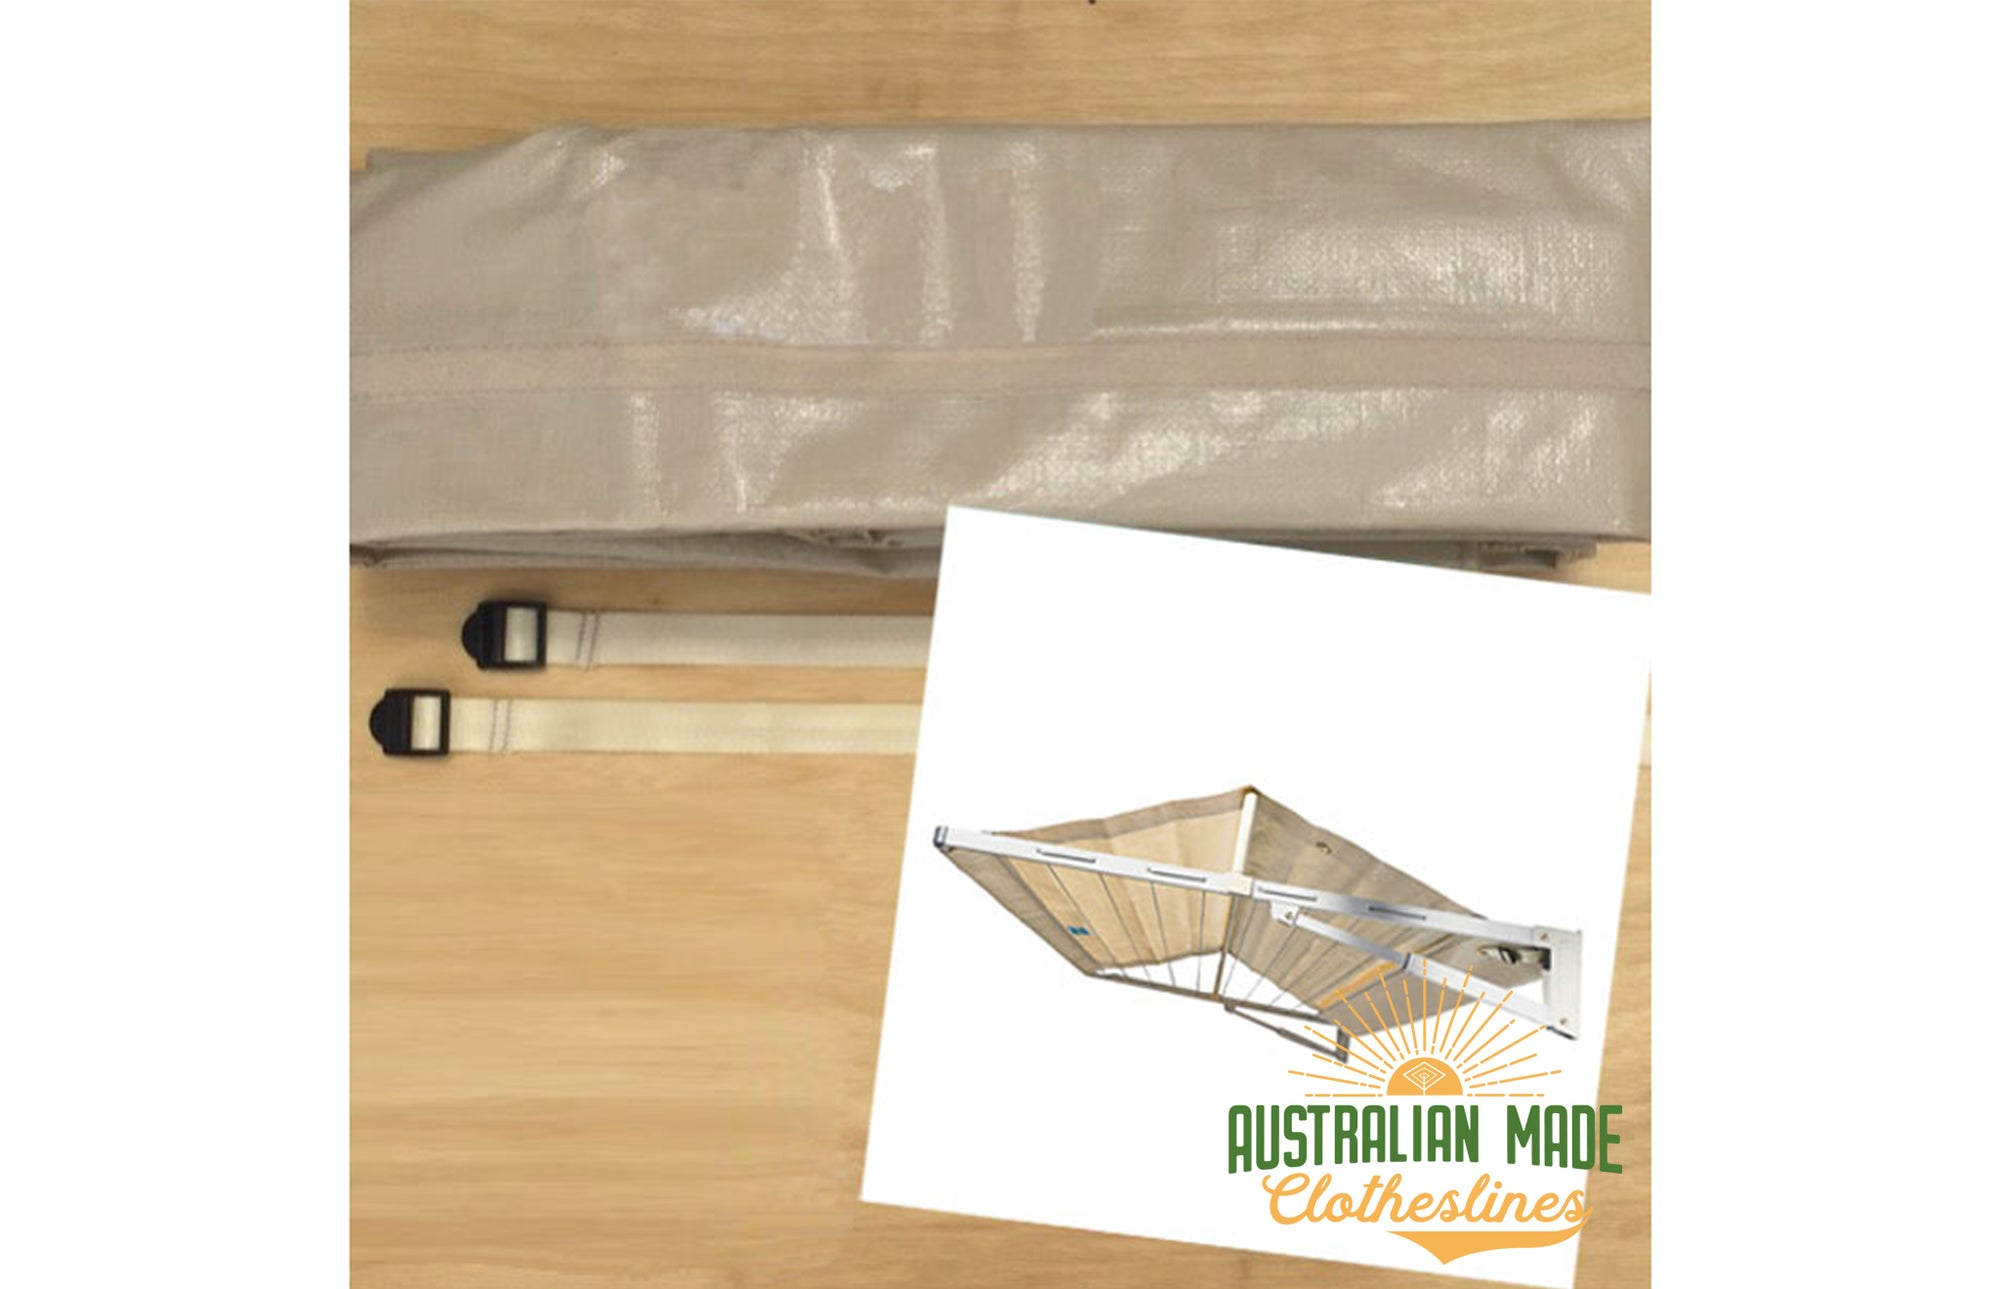 Replacement Folding Frame Clothesline Cover - Australian Made Clotheslines